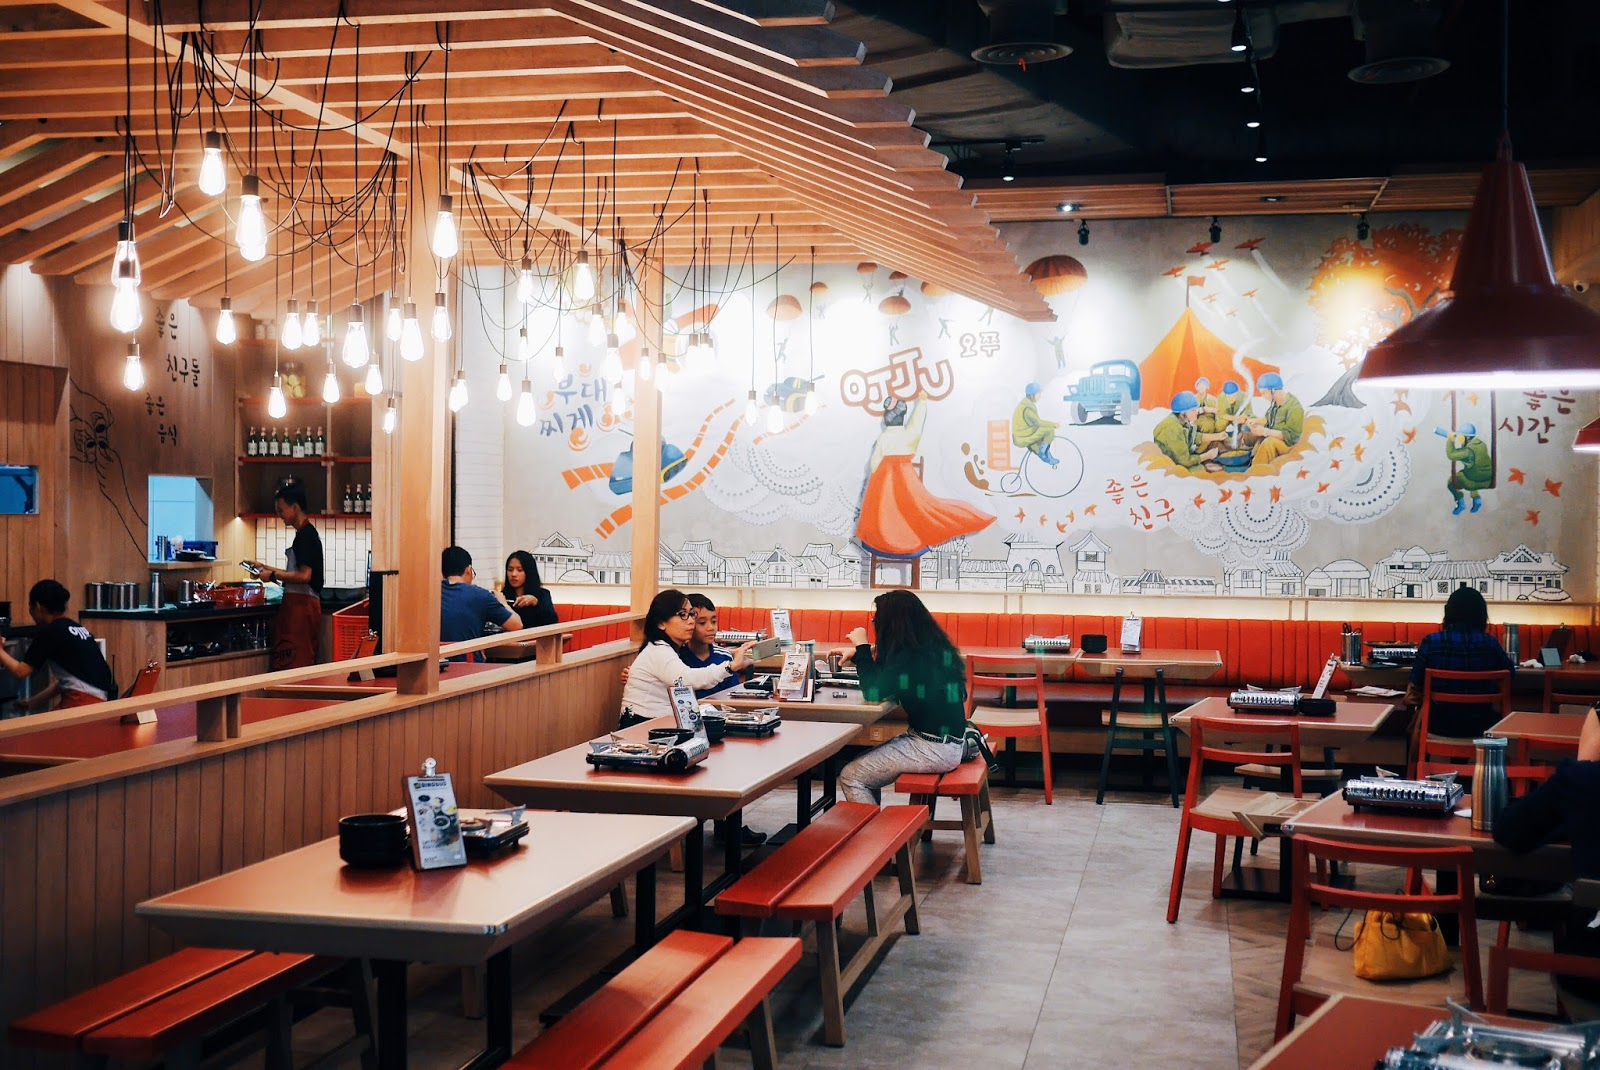 You Could Easily Guess That Its A Korean Cuisine Just By Looking At The Interior